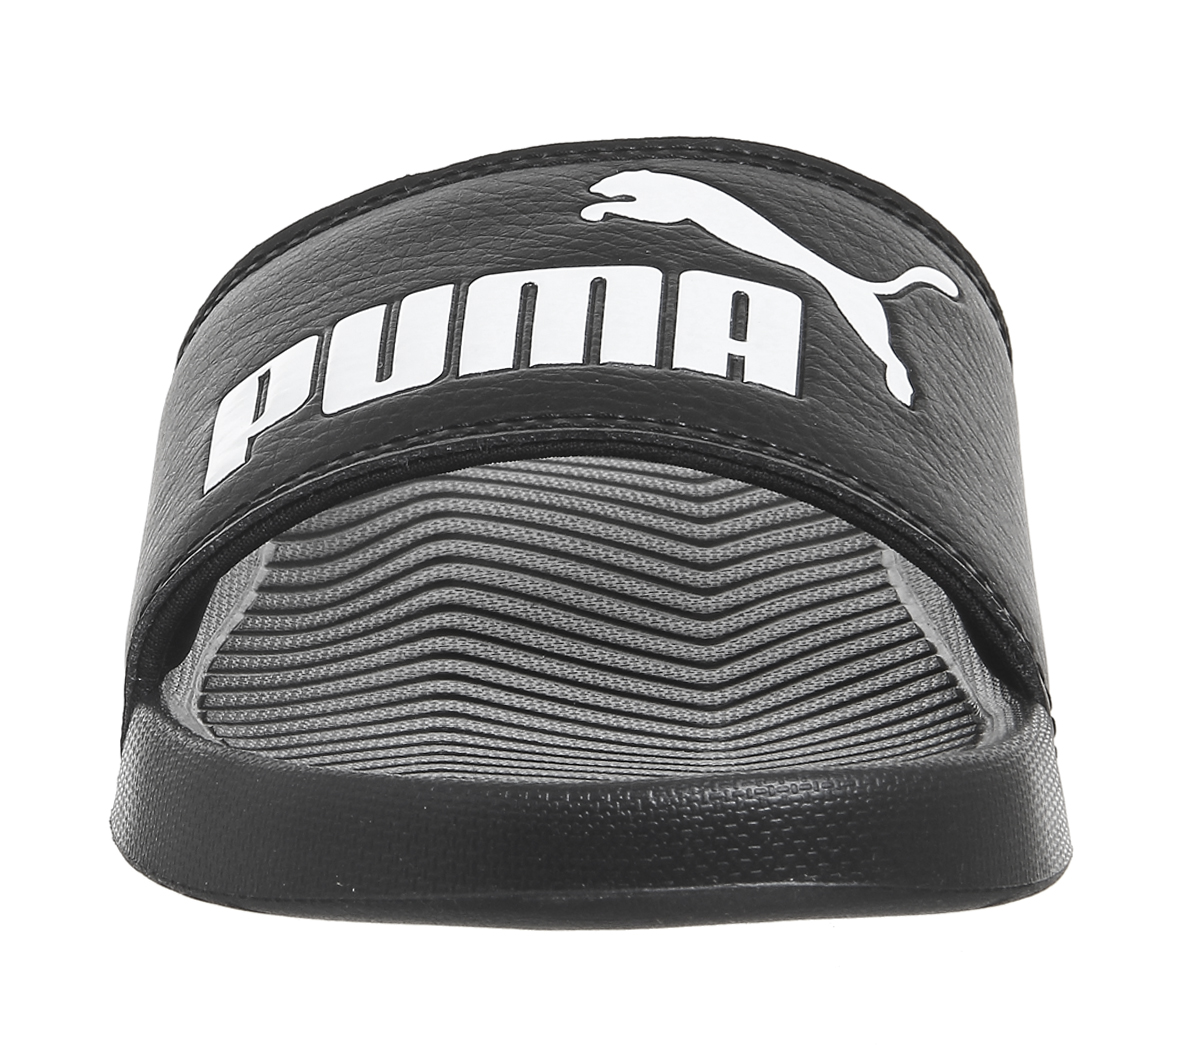 PUMA Popcat Mens Slide Black White Shoes 11 UK. About this product. Picture  1 of 6  Picture 2 of 6 ... 68f67de40